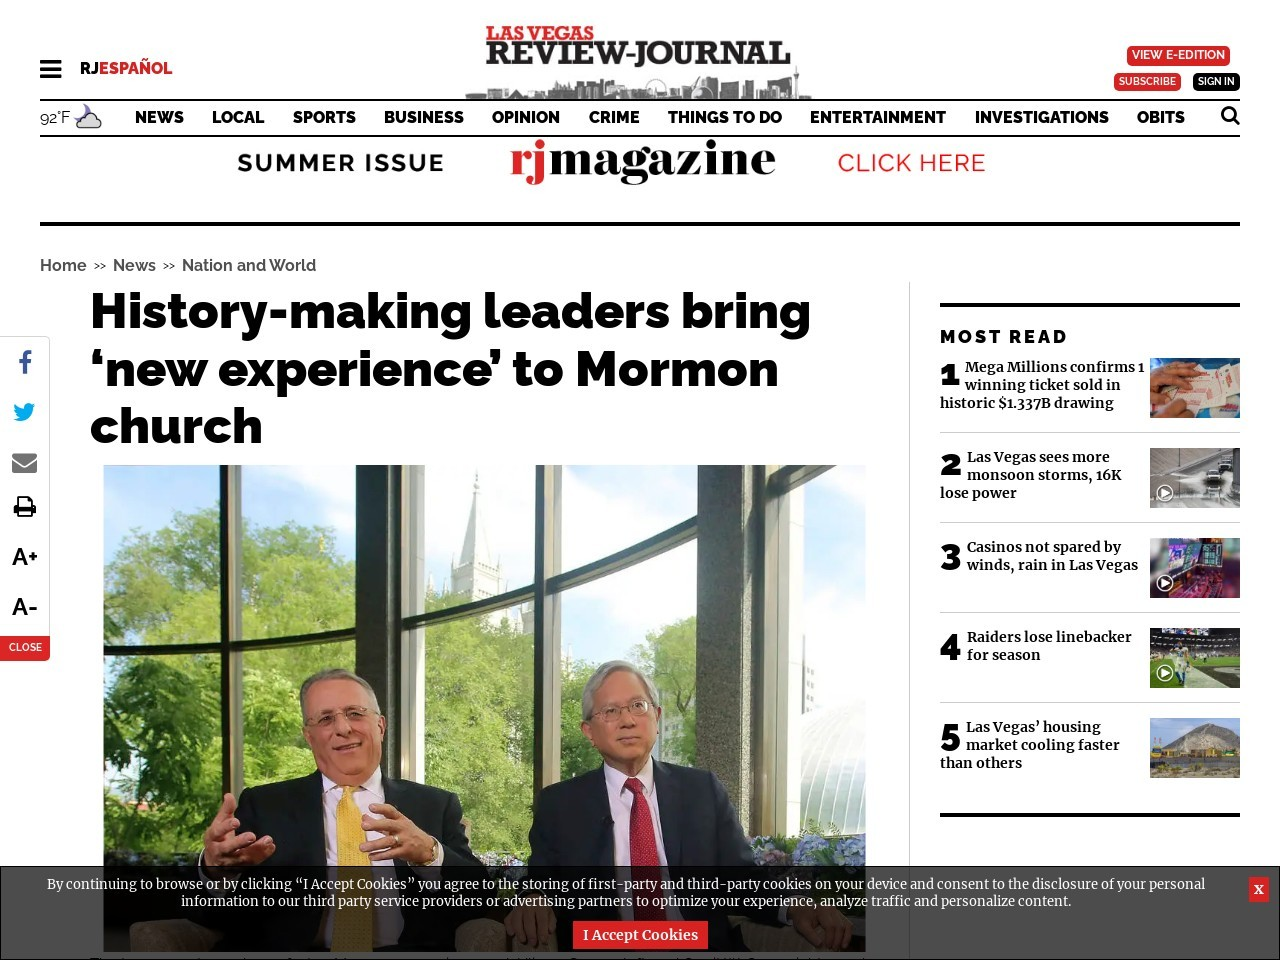 History-making leaders bring 'new experience' to Mormon church